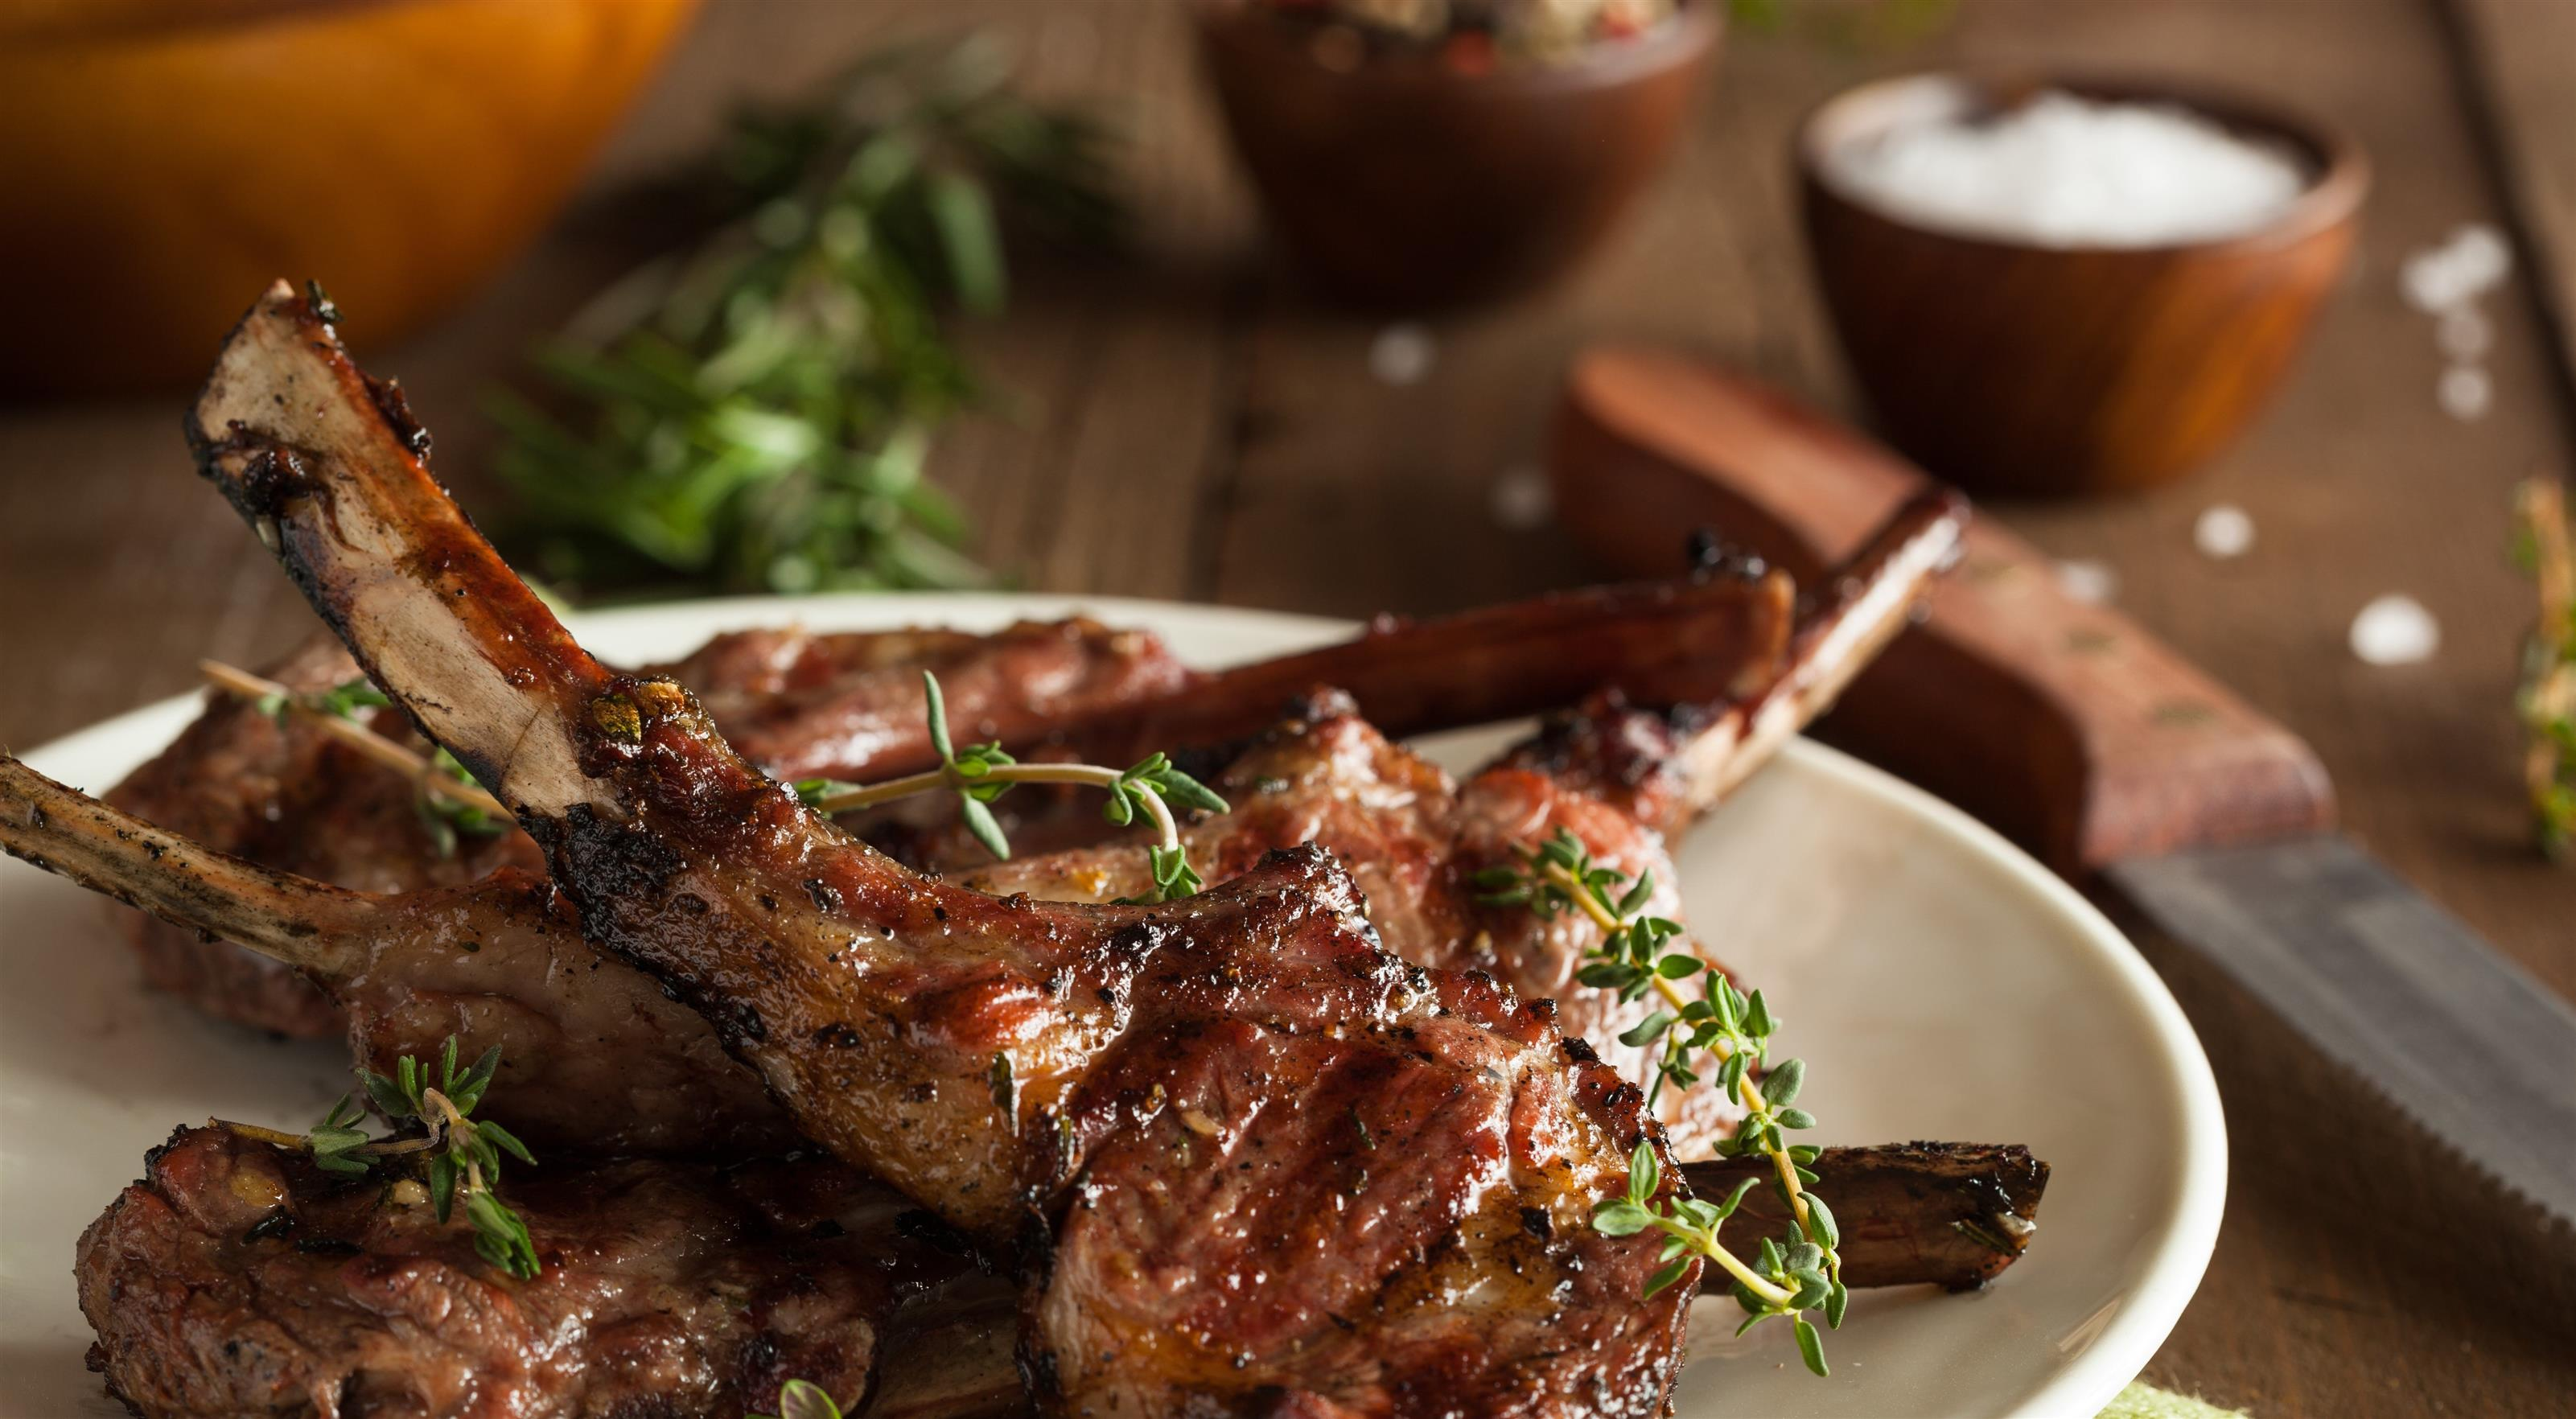 cooked lamb chops on a plate with fresh herbs